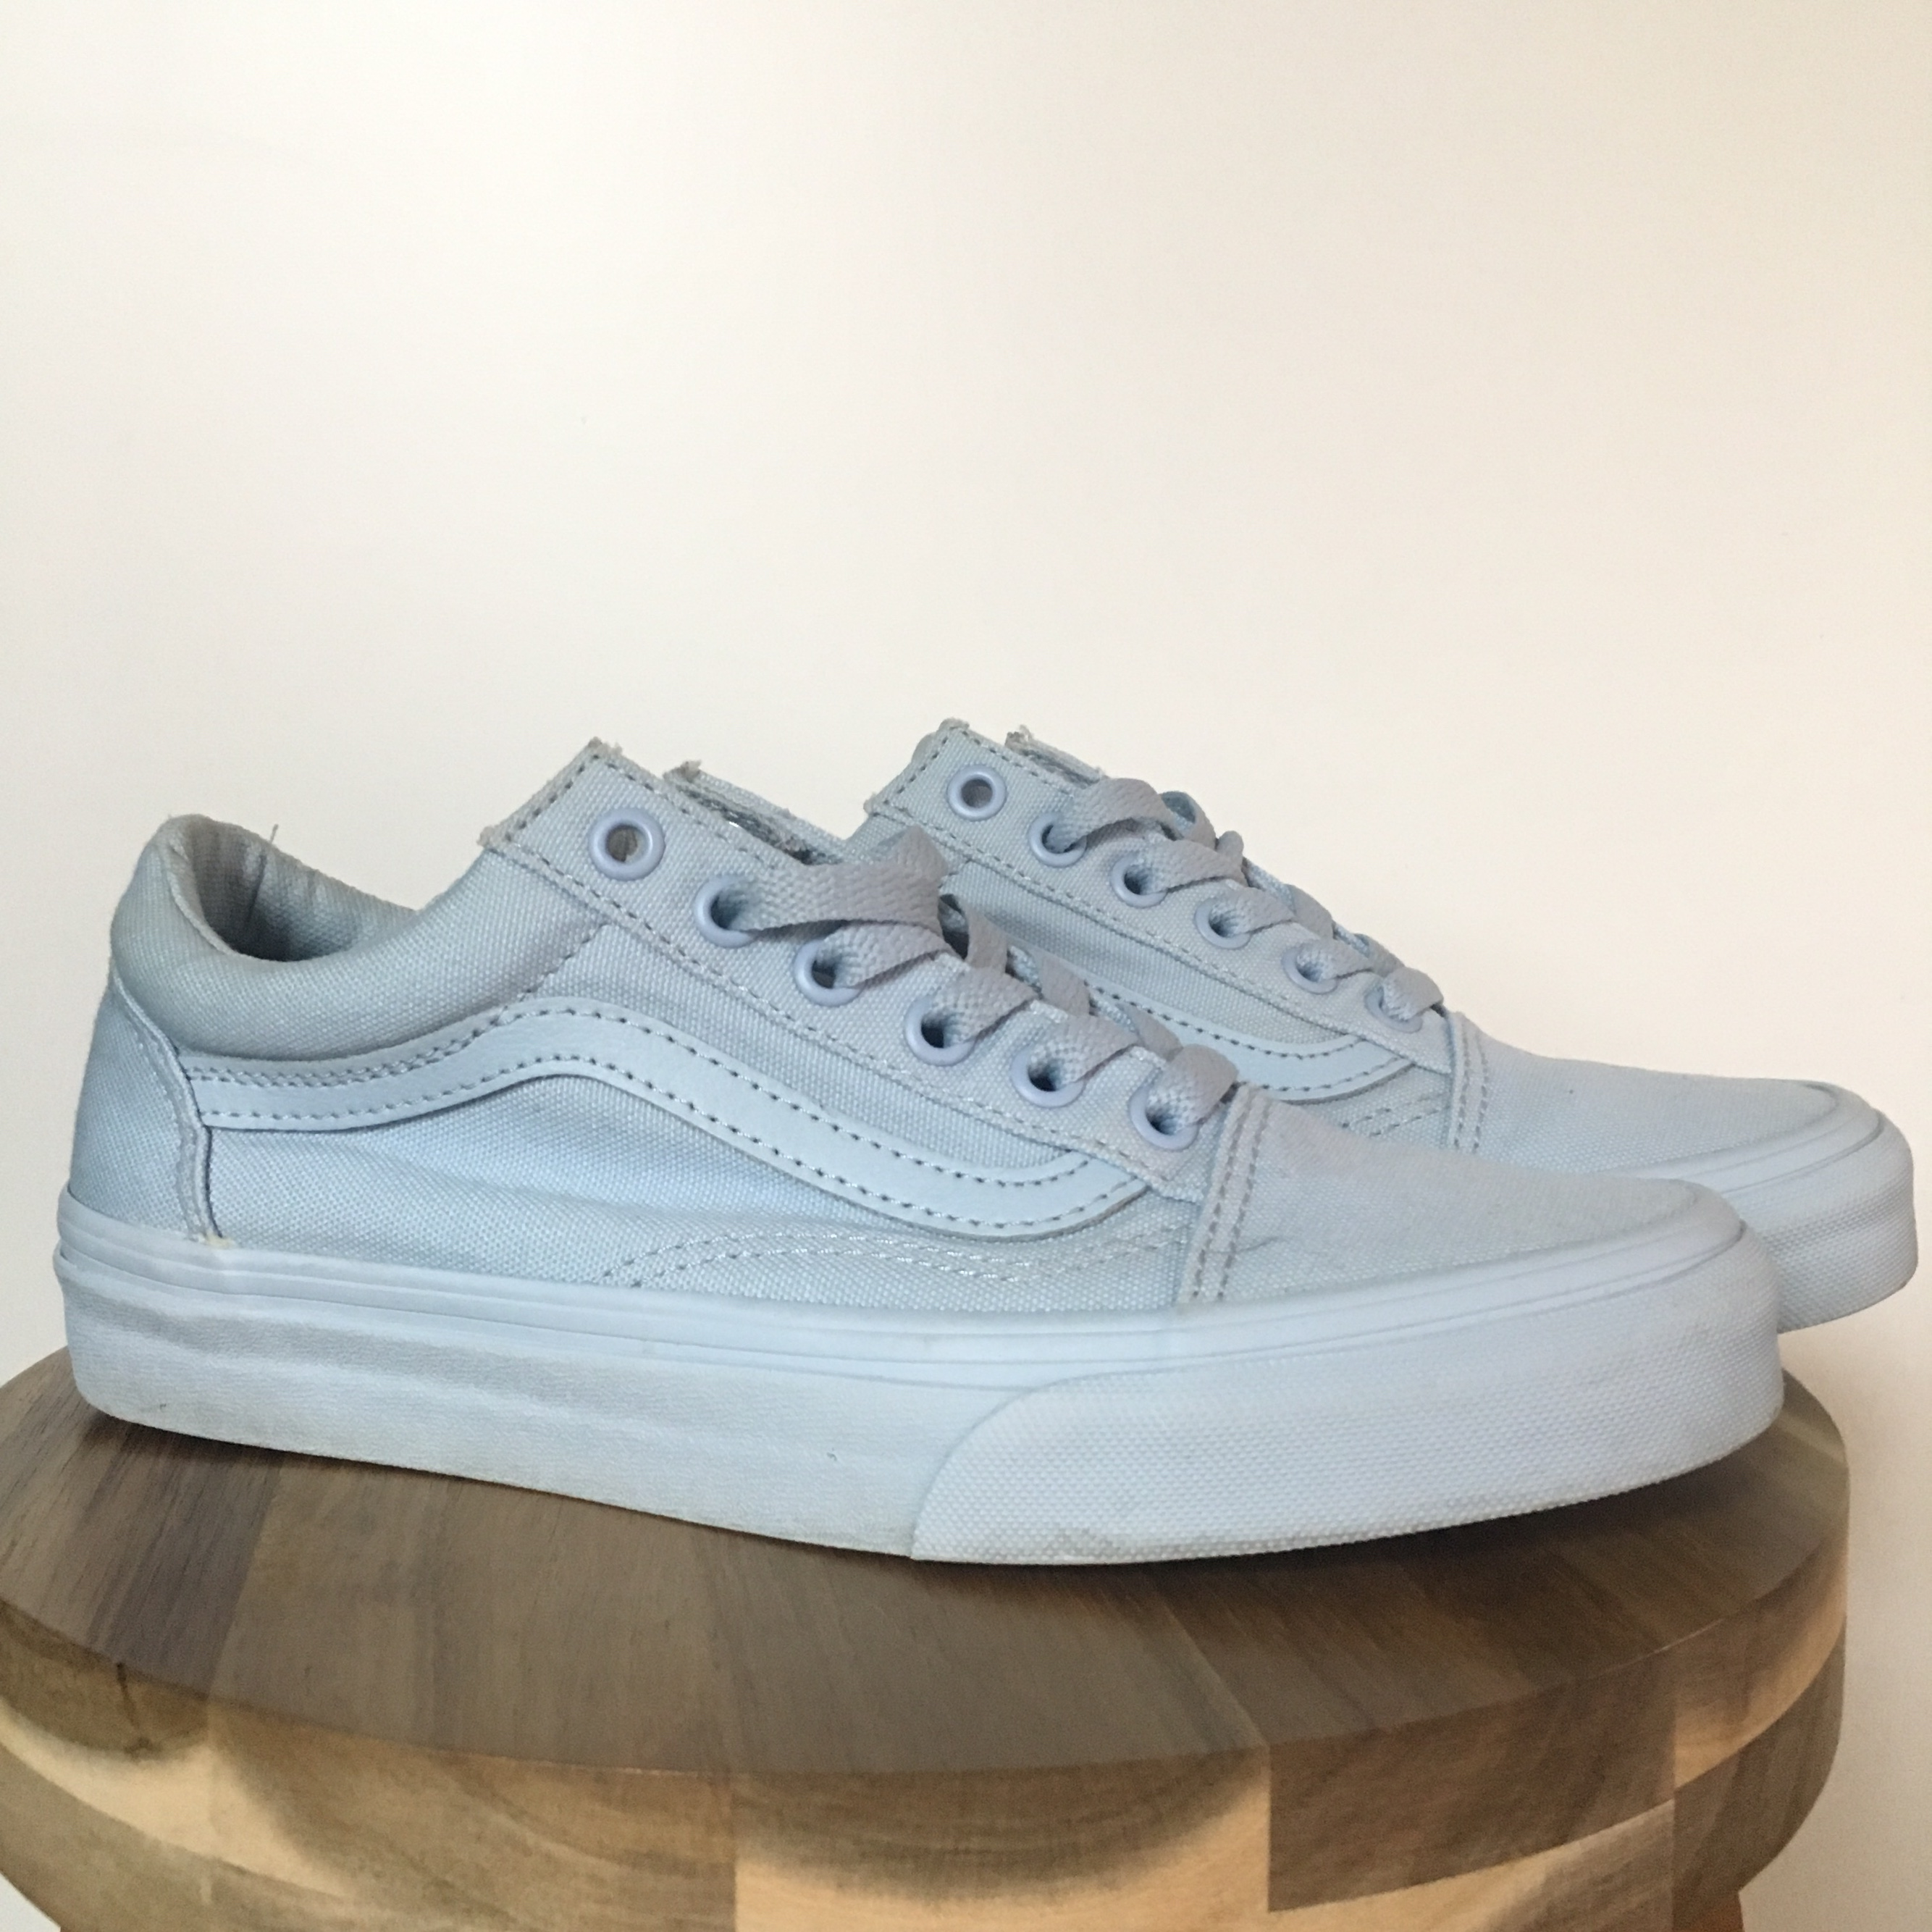 Vans Old Skool Mono Sky Blue Skate Shoes  Very clean    - Depop